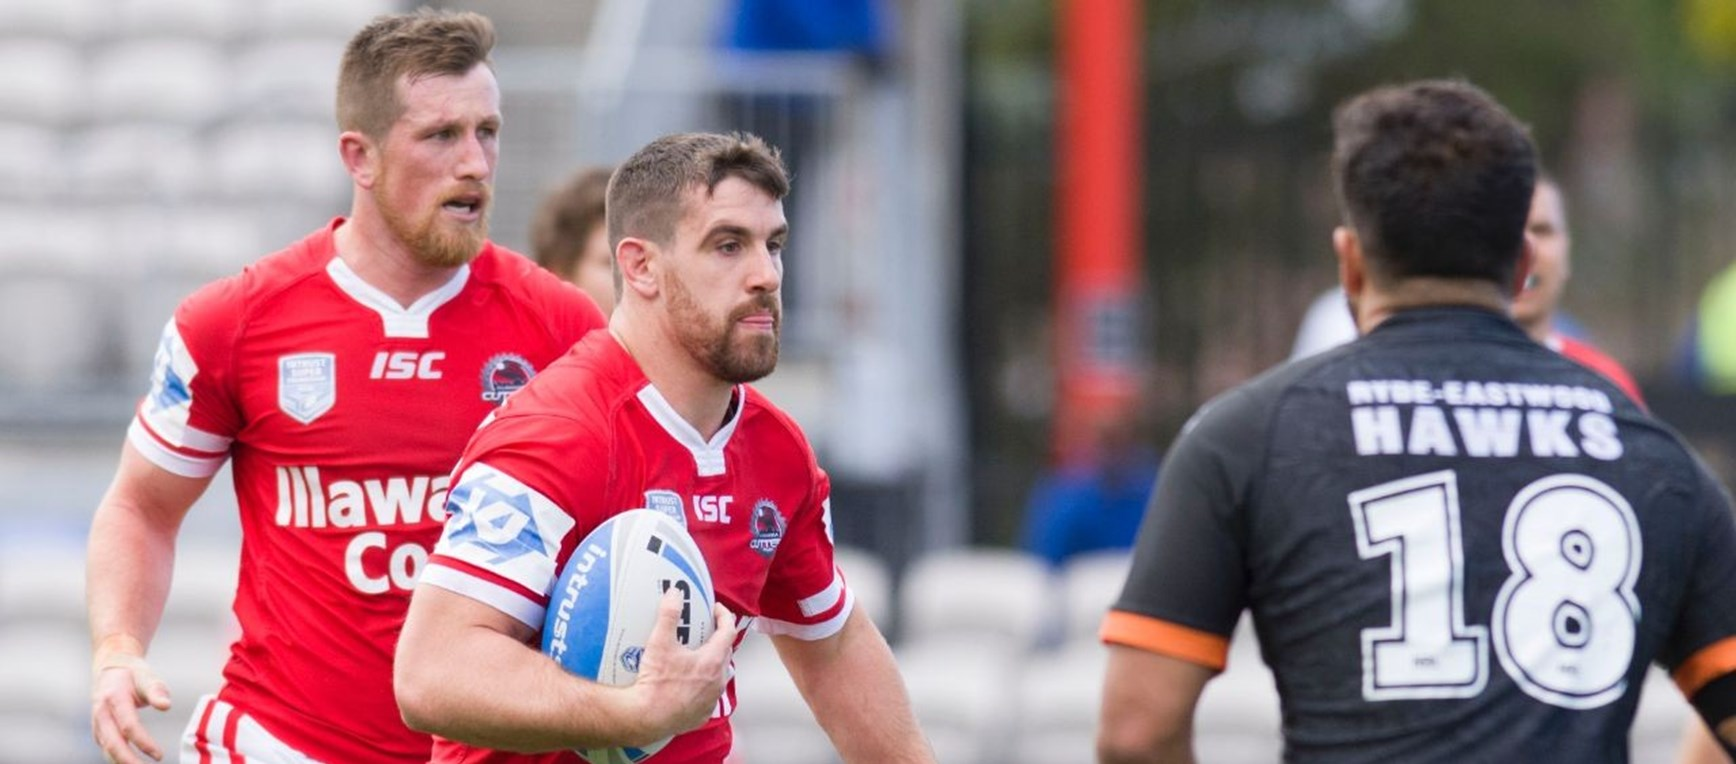 Gallery: NSW Cup Qualifying Final v Wests Tigers